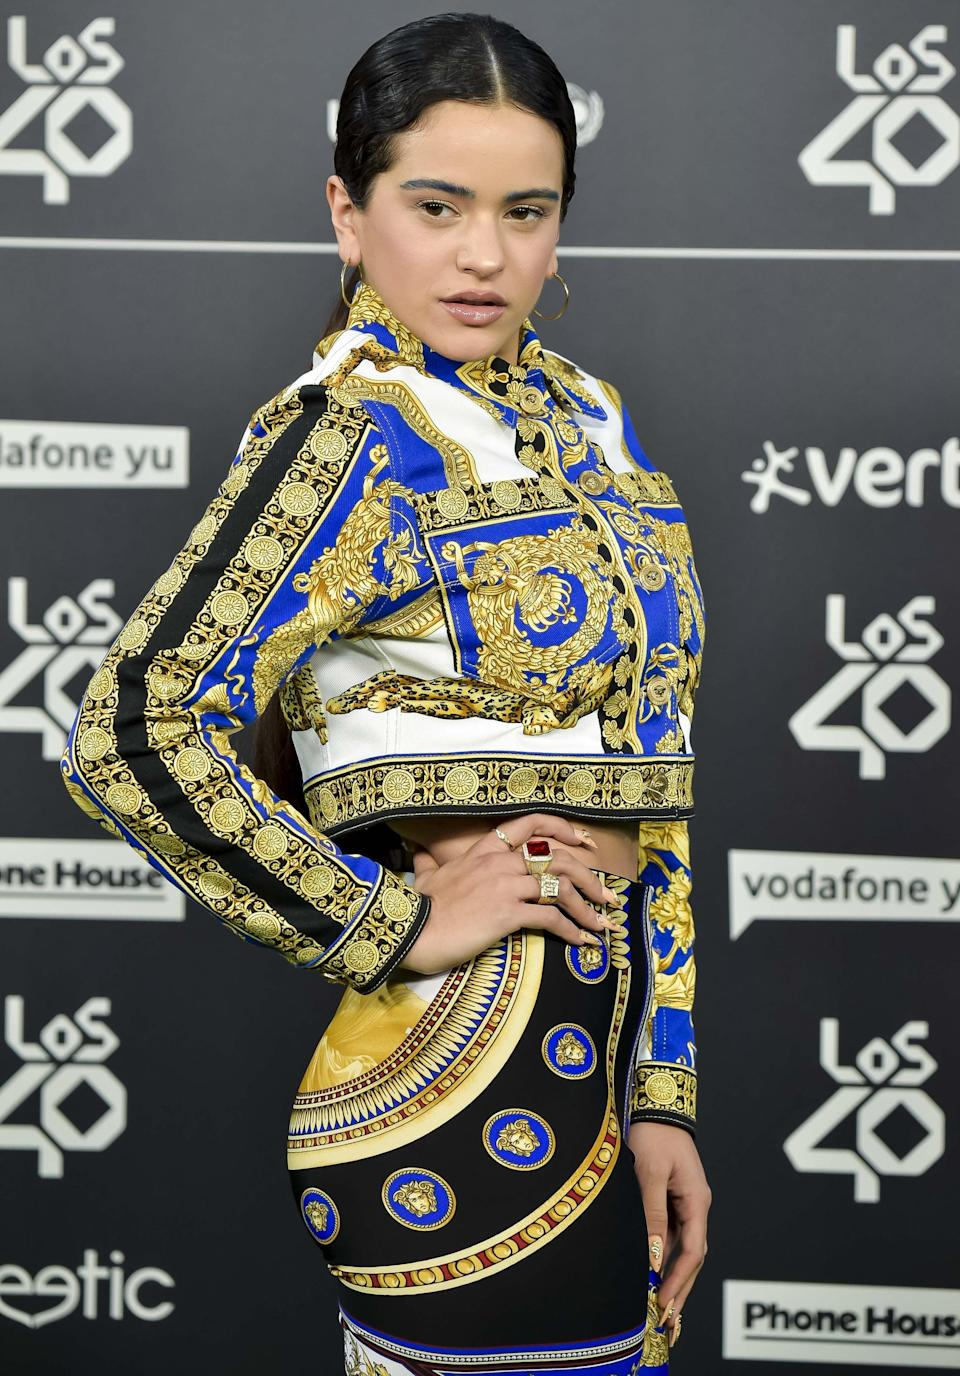 <p>Rosalía matched her makeup with her outfit by tinting her eyebrows a light shade of blue and wearing yellow eyeliner.</p>